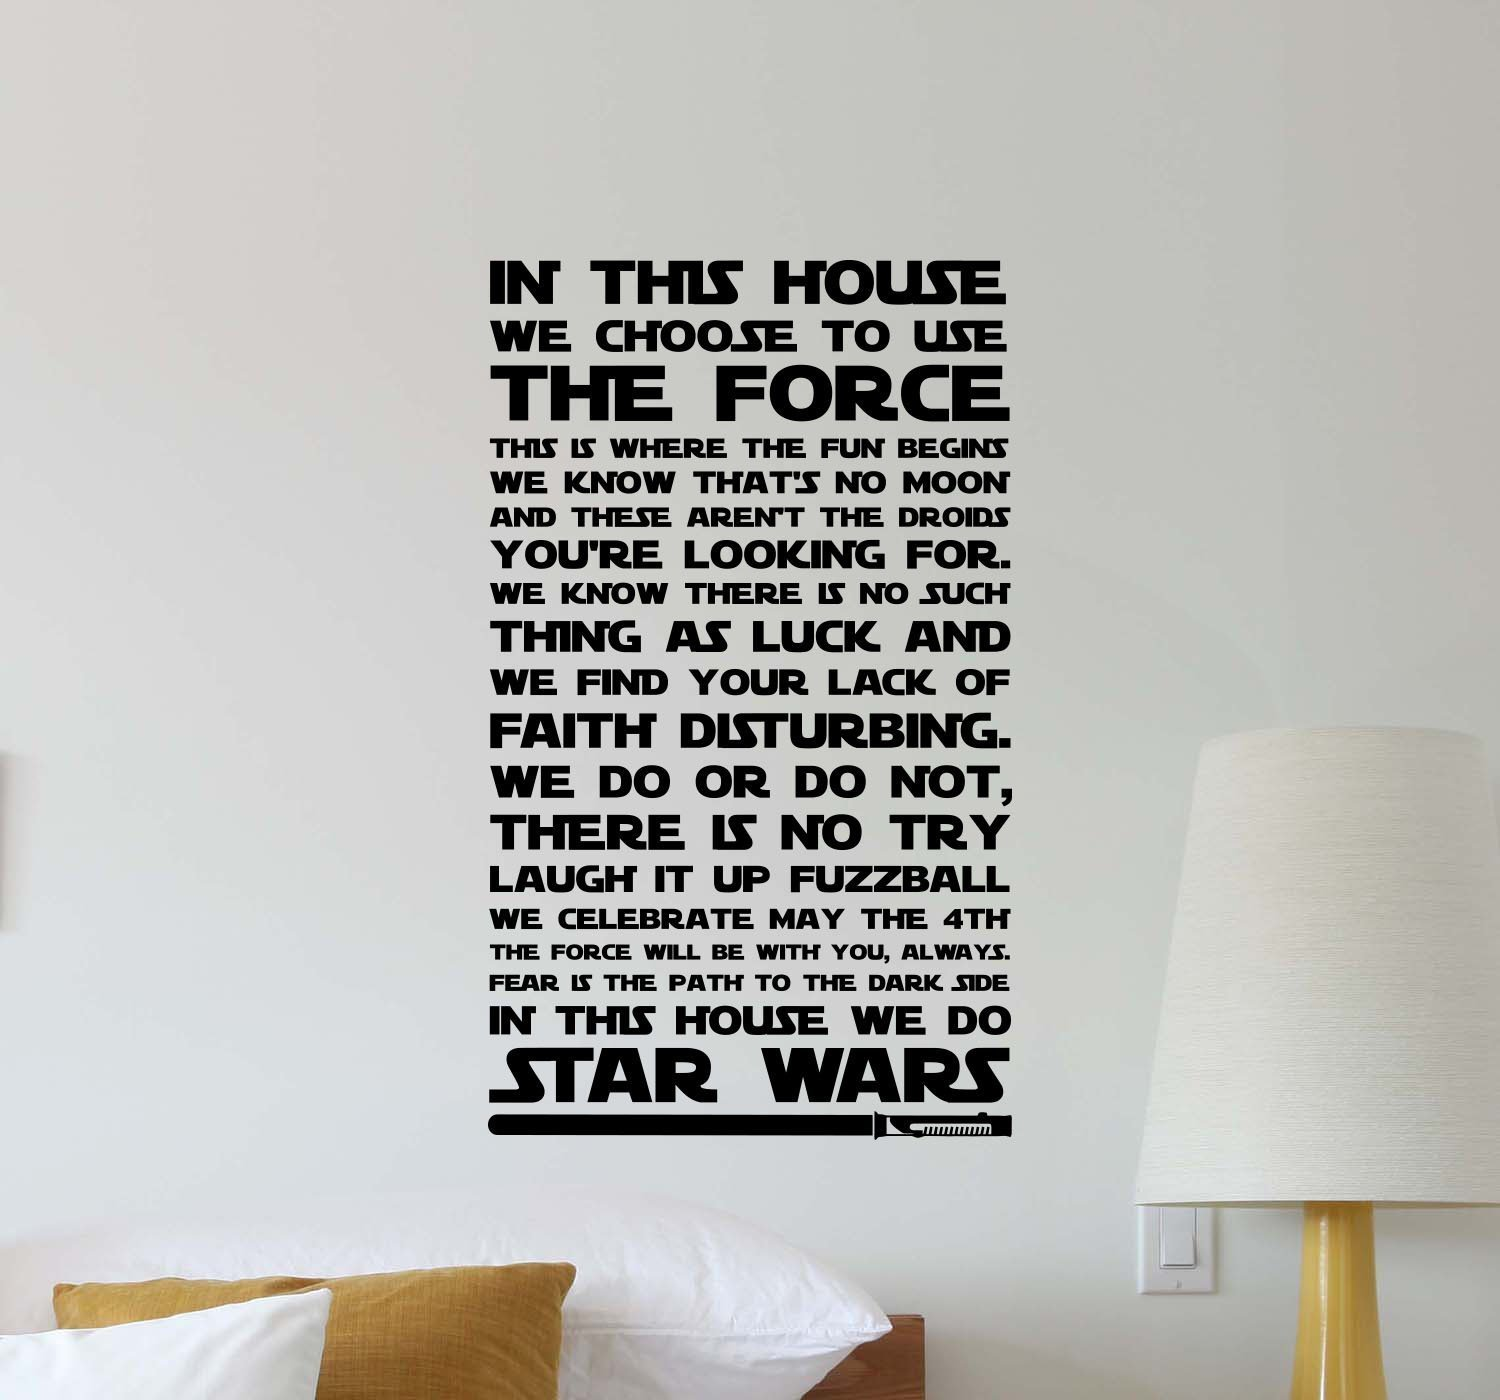 In This House We Do Star Wars Wall Decal Quote Movie Inspirational Sayings Lettering Vinyl Sticker Motivational Gift Kids Room Home Bedroom Decor Art Poster Mural Custom Print